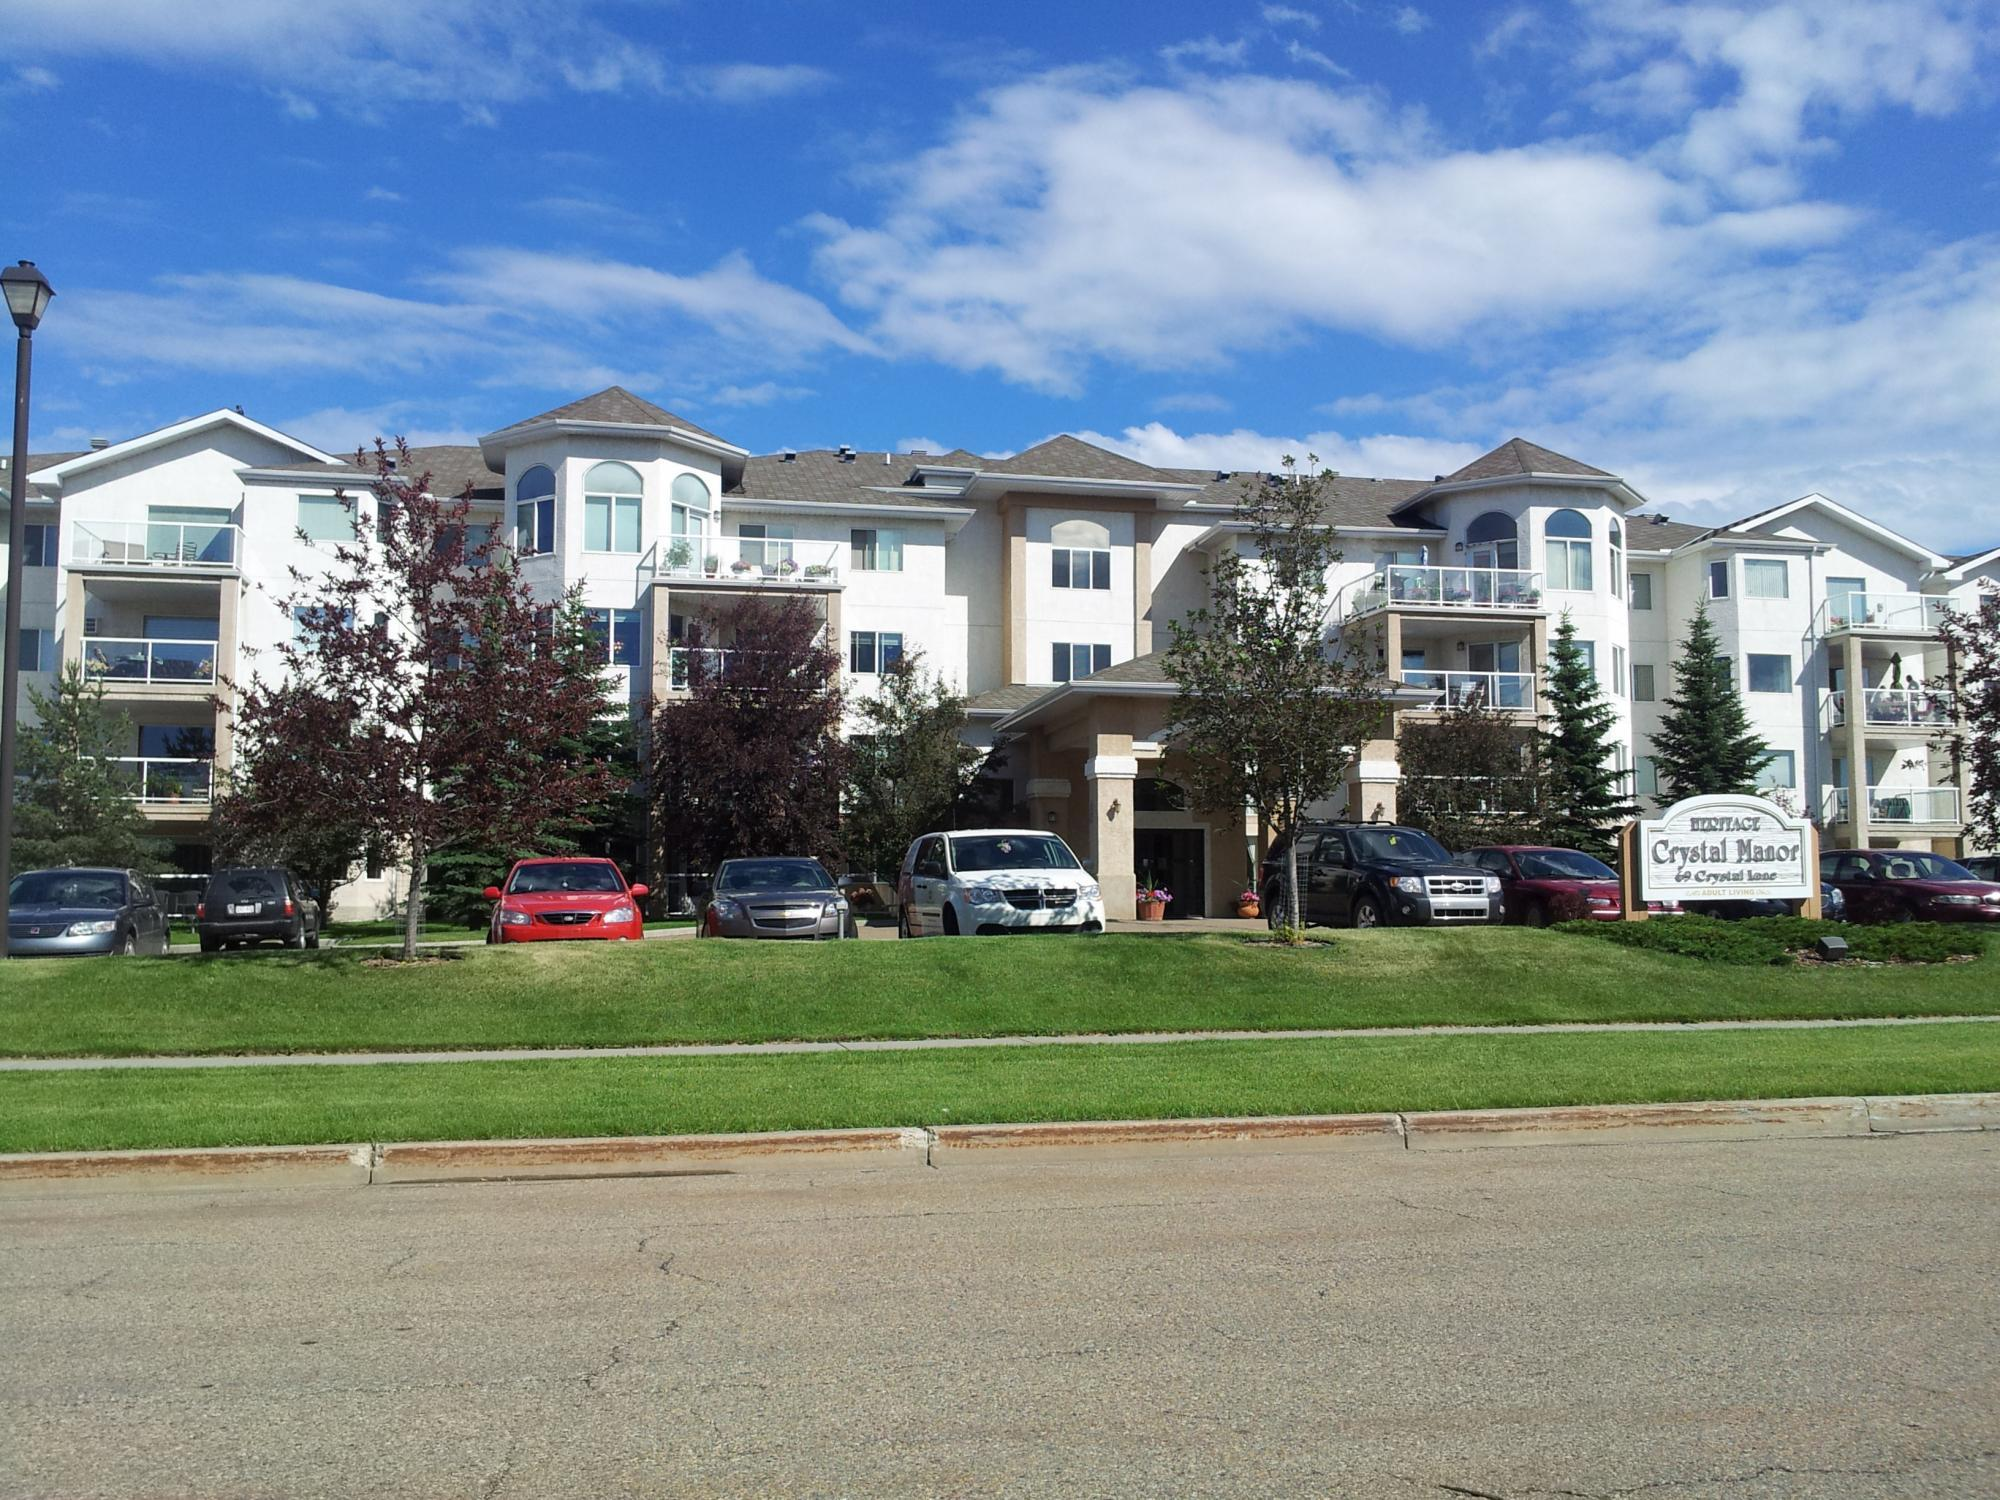 Heritage Crystal Manor, Sherwood Park, AB